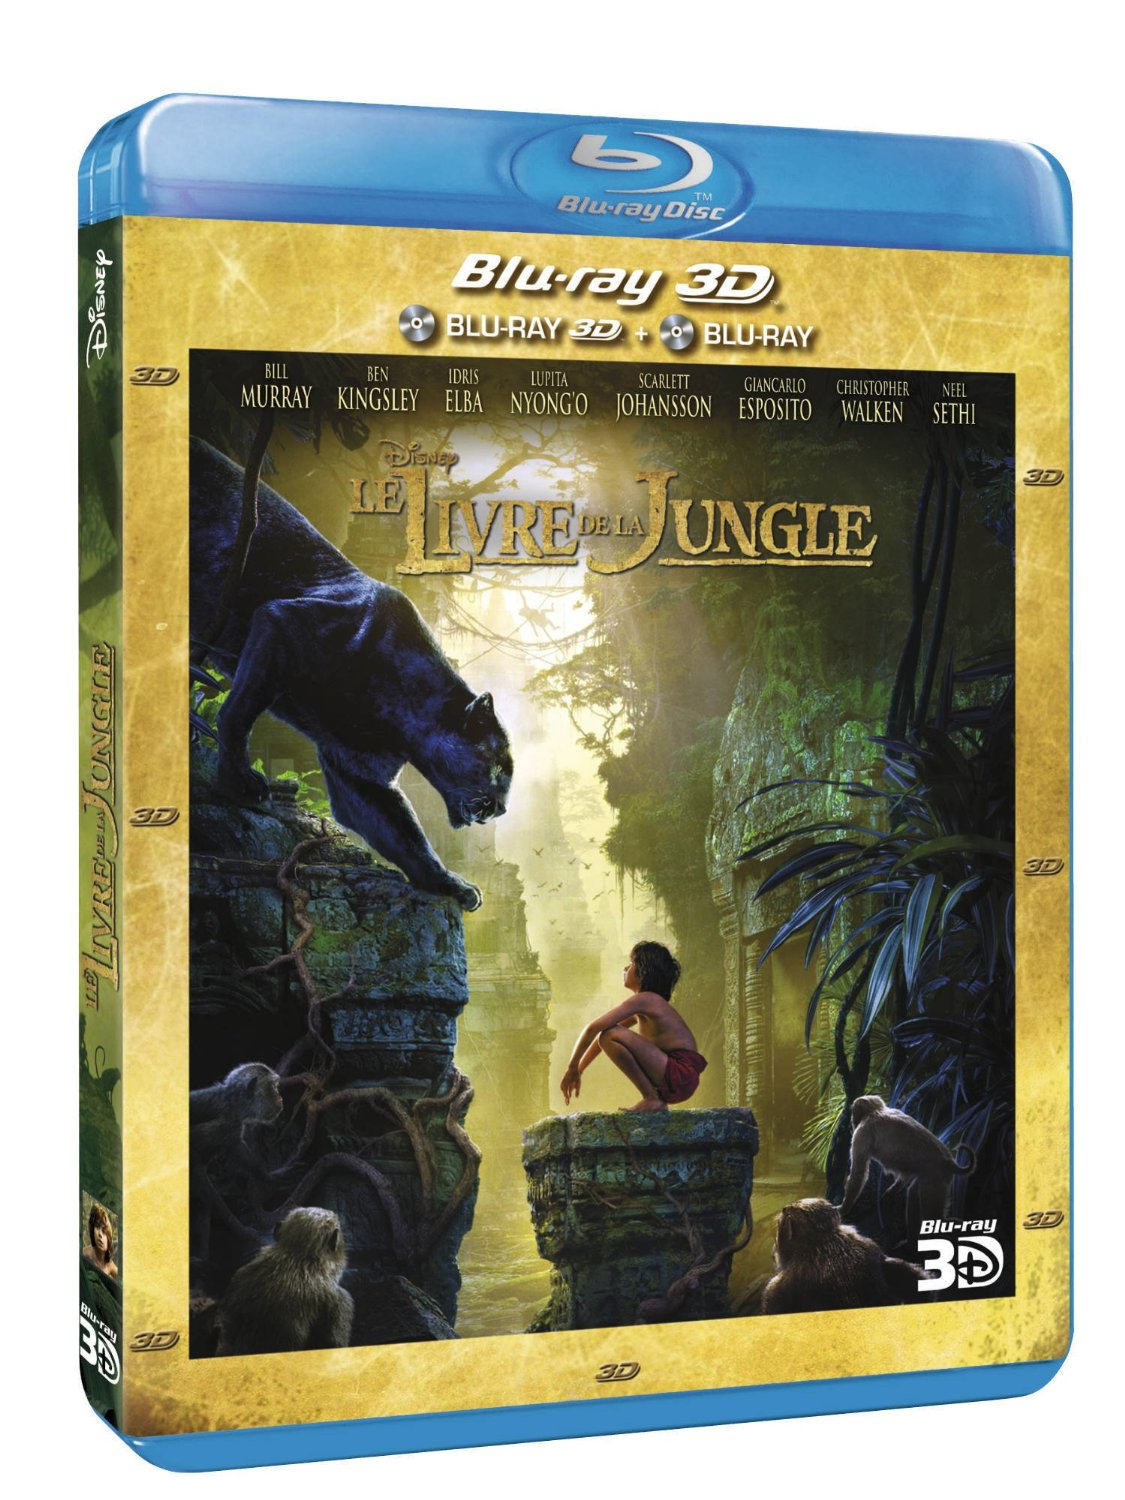 le livre de la jungle combo blu ray 3d blu ray 2d ventes pas. Black Bedroom Furniture Sets. Home Design Ideas